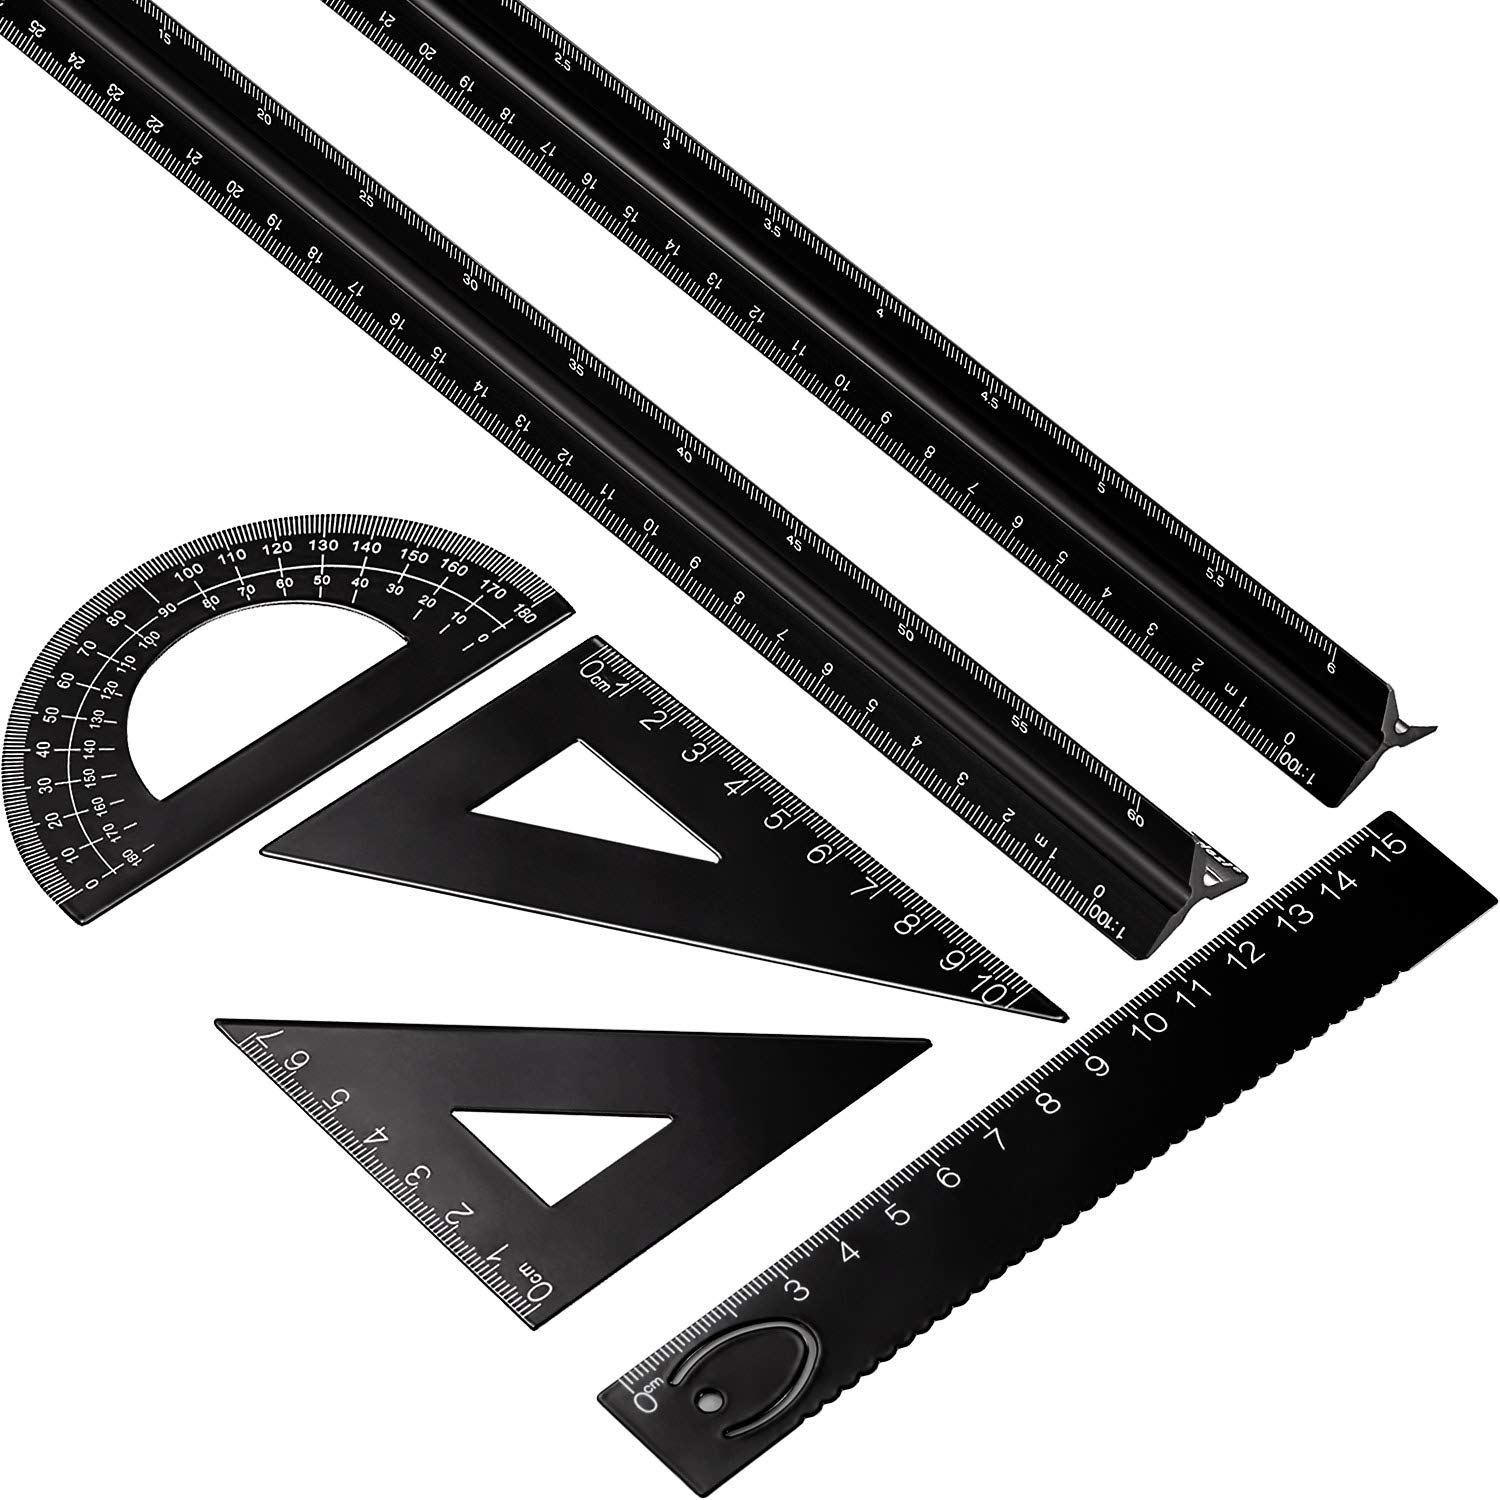 Leinuosen 6 Pieces Aluminum Triangular Architect Scale Ruler Set, 2 Pack 12 Inch Aluminum Scale Ruler with 4 Pieces Aluminum Triangle Ruler Square Set for Architects, Students, Draftsman and Engineers by Leinuosen